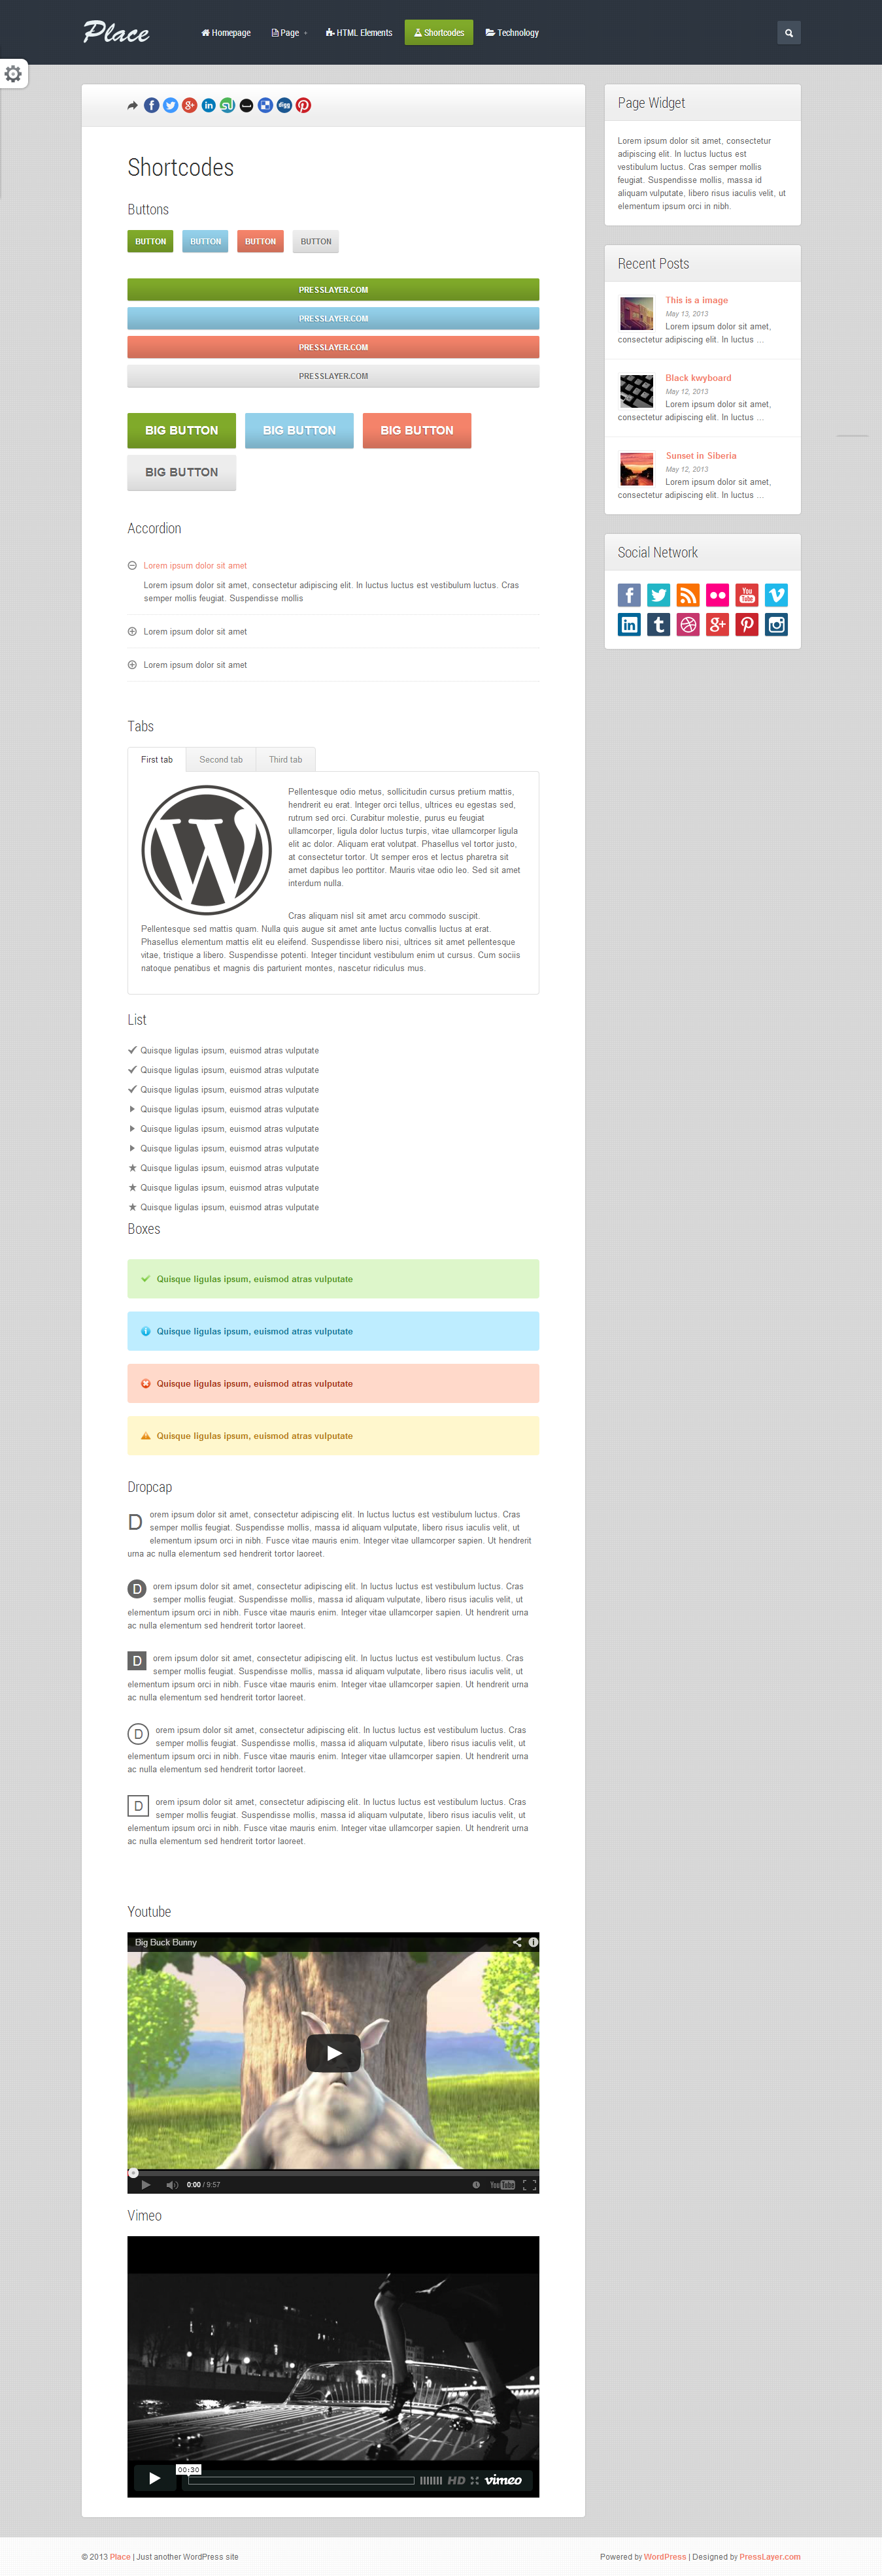 Place - Responsive Blogging WordPress Theme - 03_Shortcodes.png Screenshot of all shortcodes styles in template